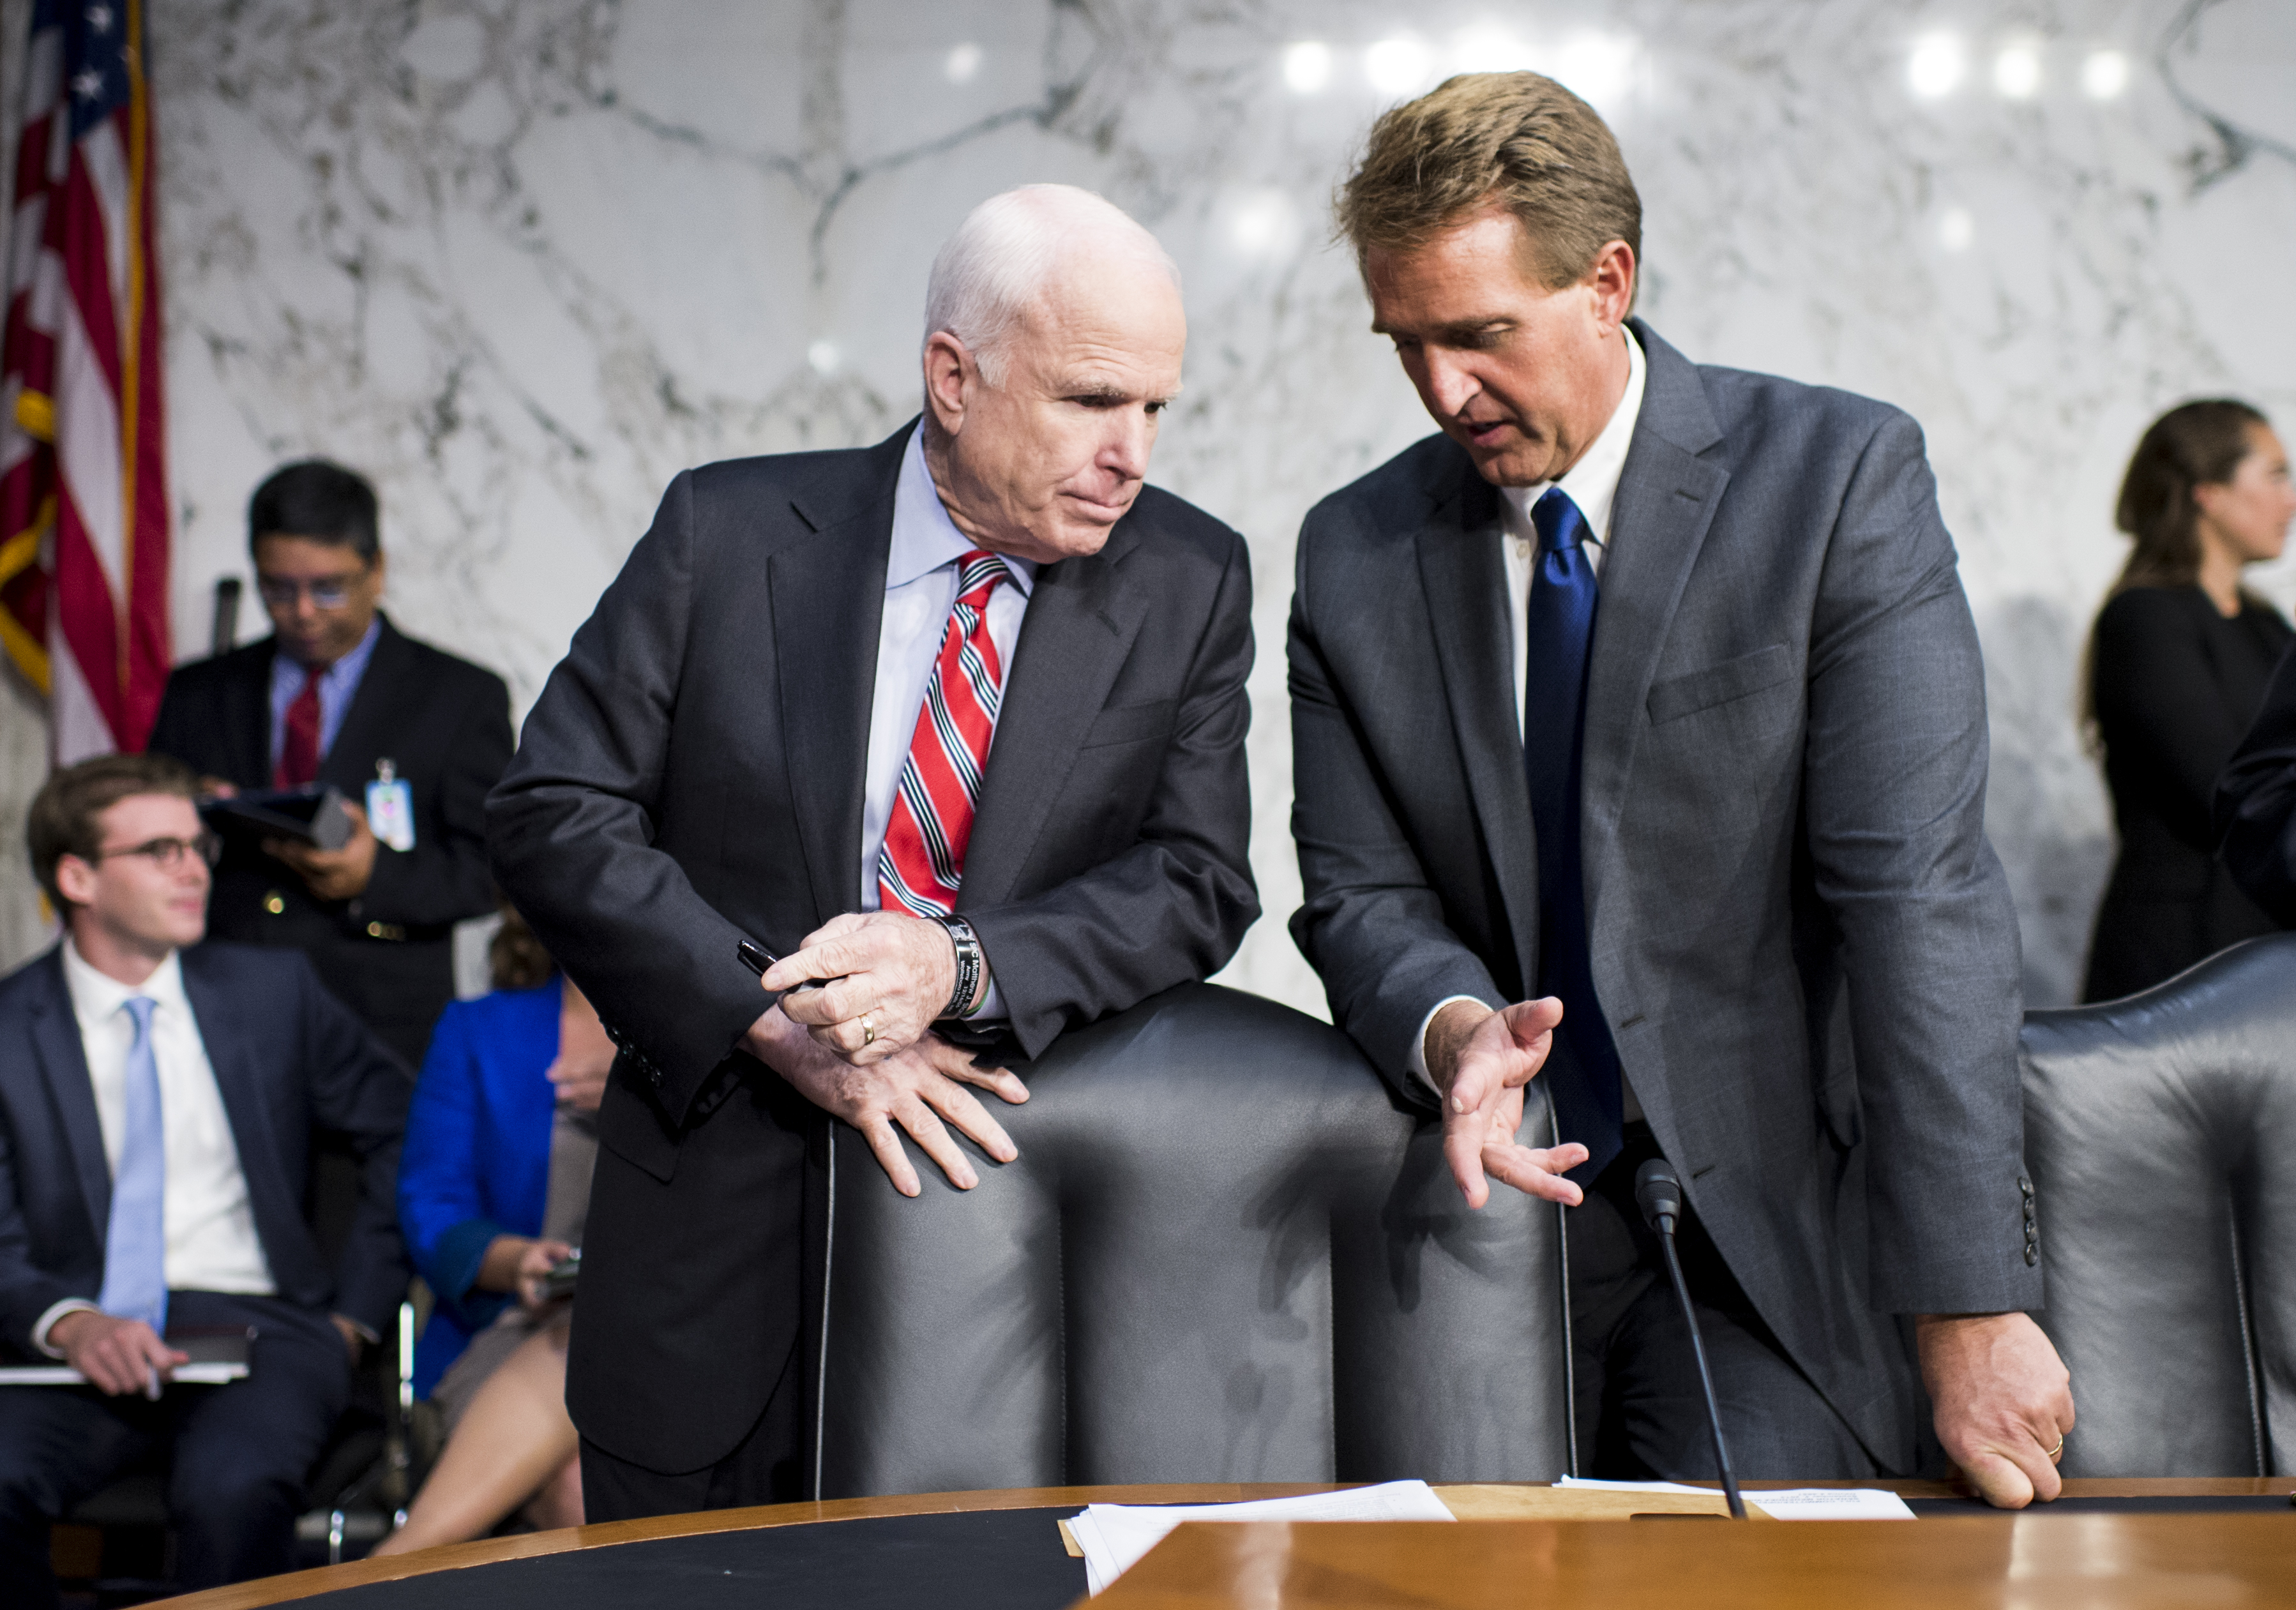 Sen. John McCain, R-Ariz., left, and Sen. Jeff Flake, R-Ariz., talk before the start of the Senate Foreign Relations hearing to debate the authorization for use of military force in Syria on Tuesday, Sept. 3, 2013.